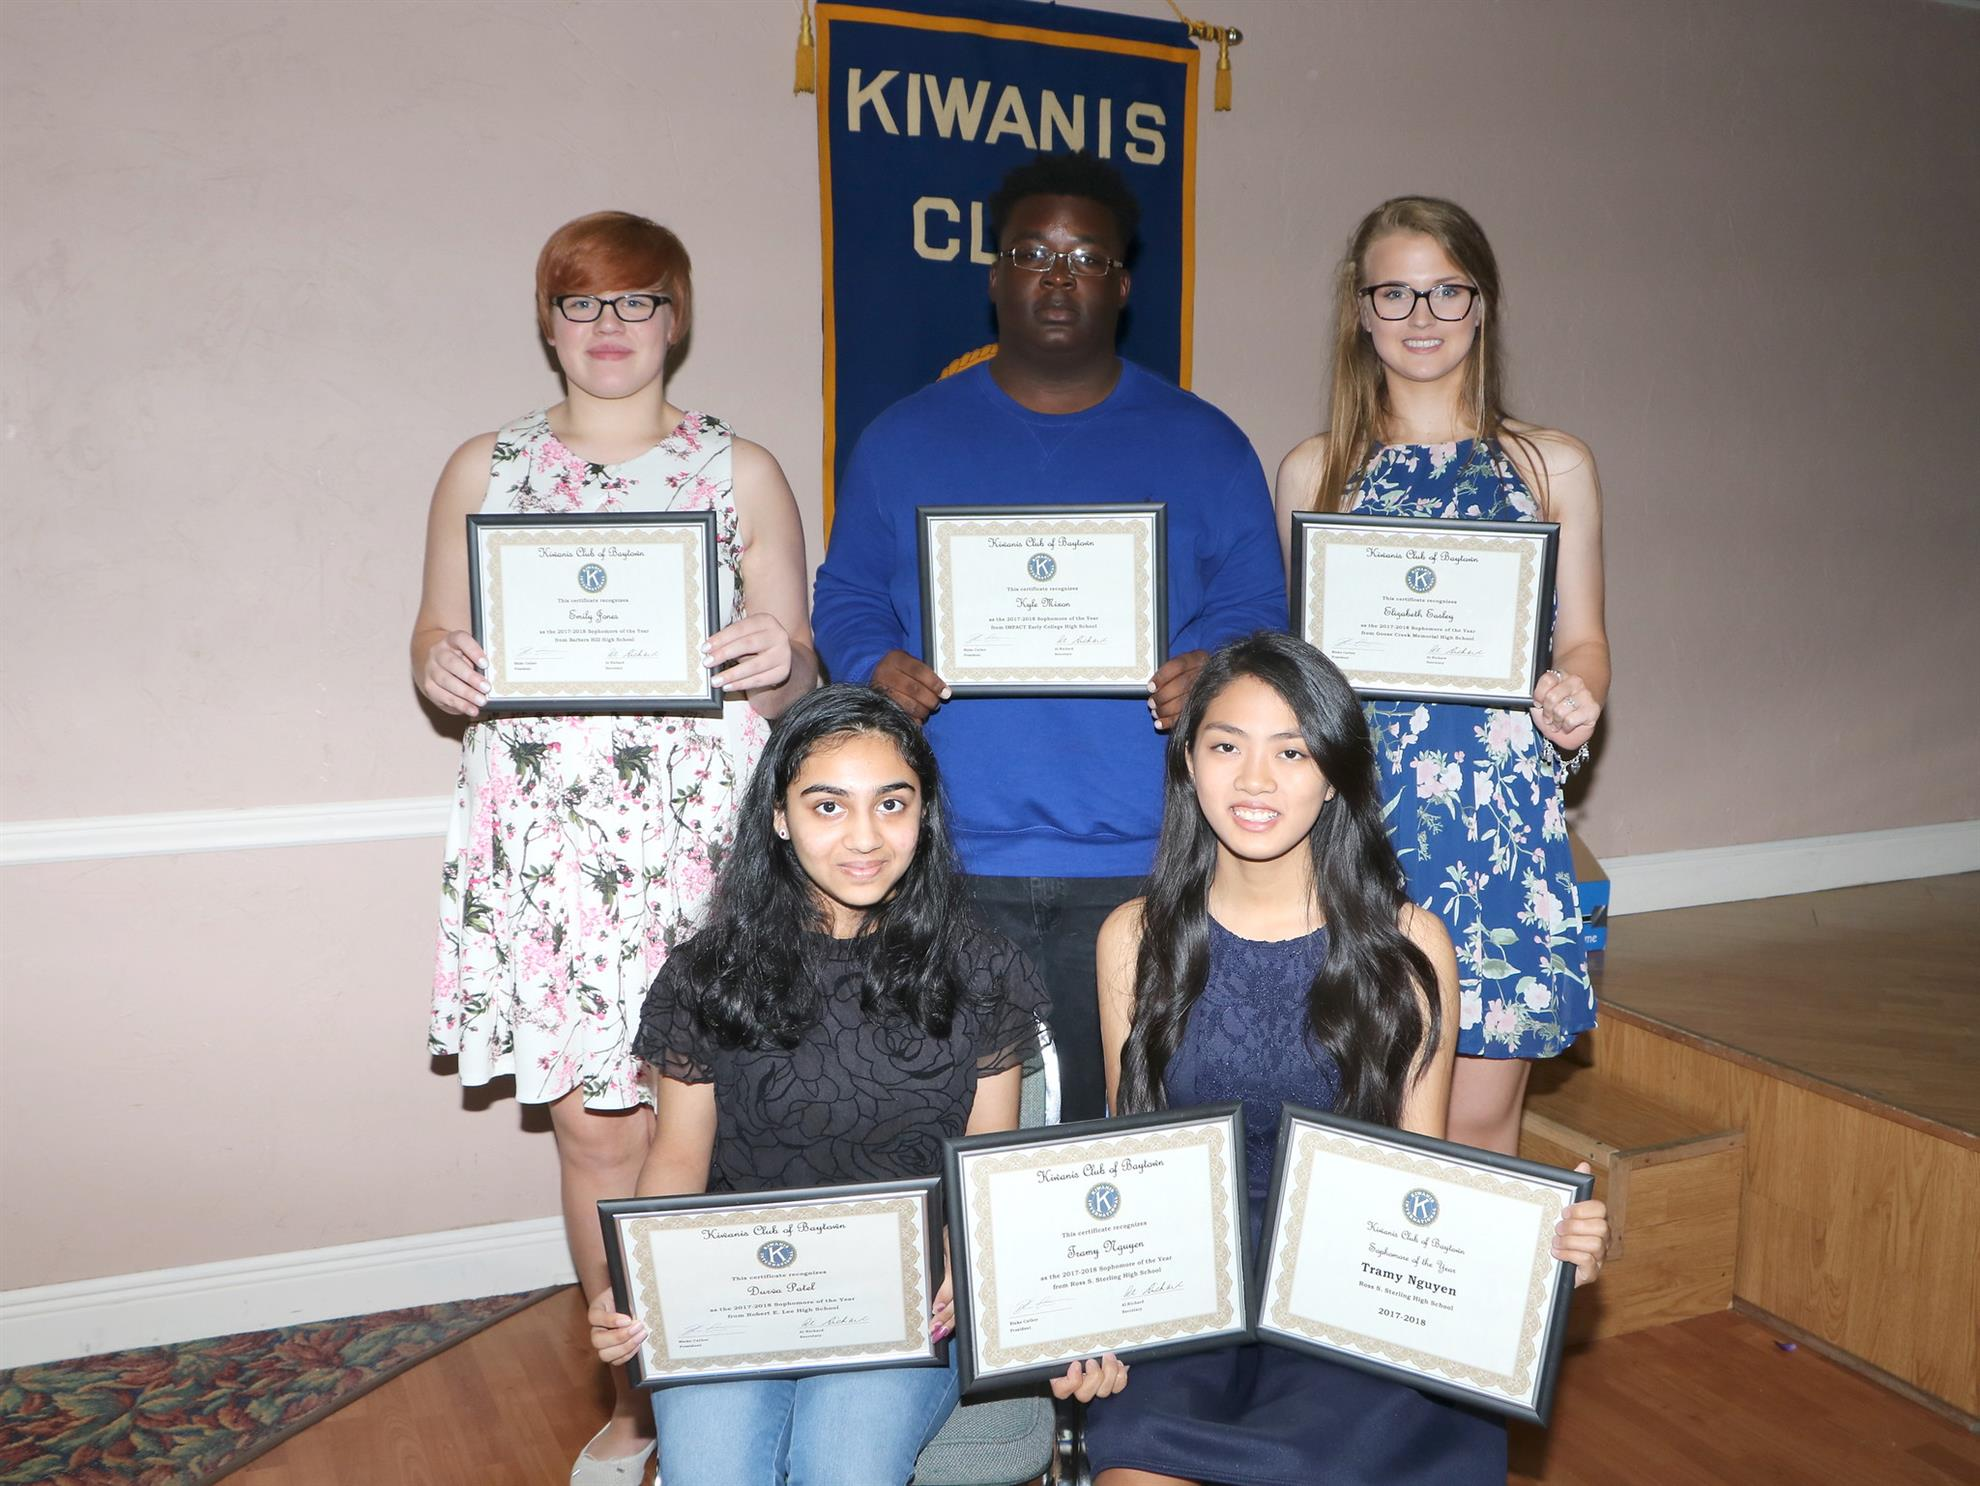 Nursing School Essay Tips Winners Of The Annual Texasoklahoma Sophomore Of The Year Essay Contest  From Local High Schools Were Recognized Recently At The Kiwanis Club Of  Baytowns  Harrison Bergeron Theme Essay also Essay Topics On Love Stories  Kiwanis Club Of Baytown Essay On Abortion Pro Choice